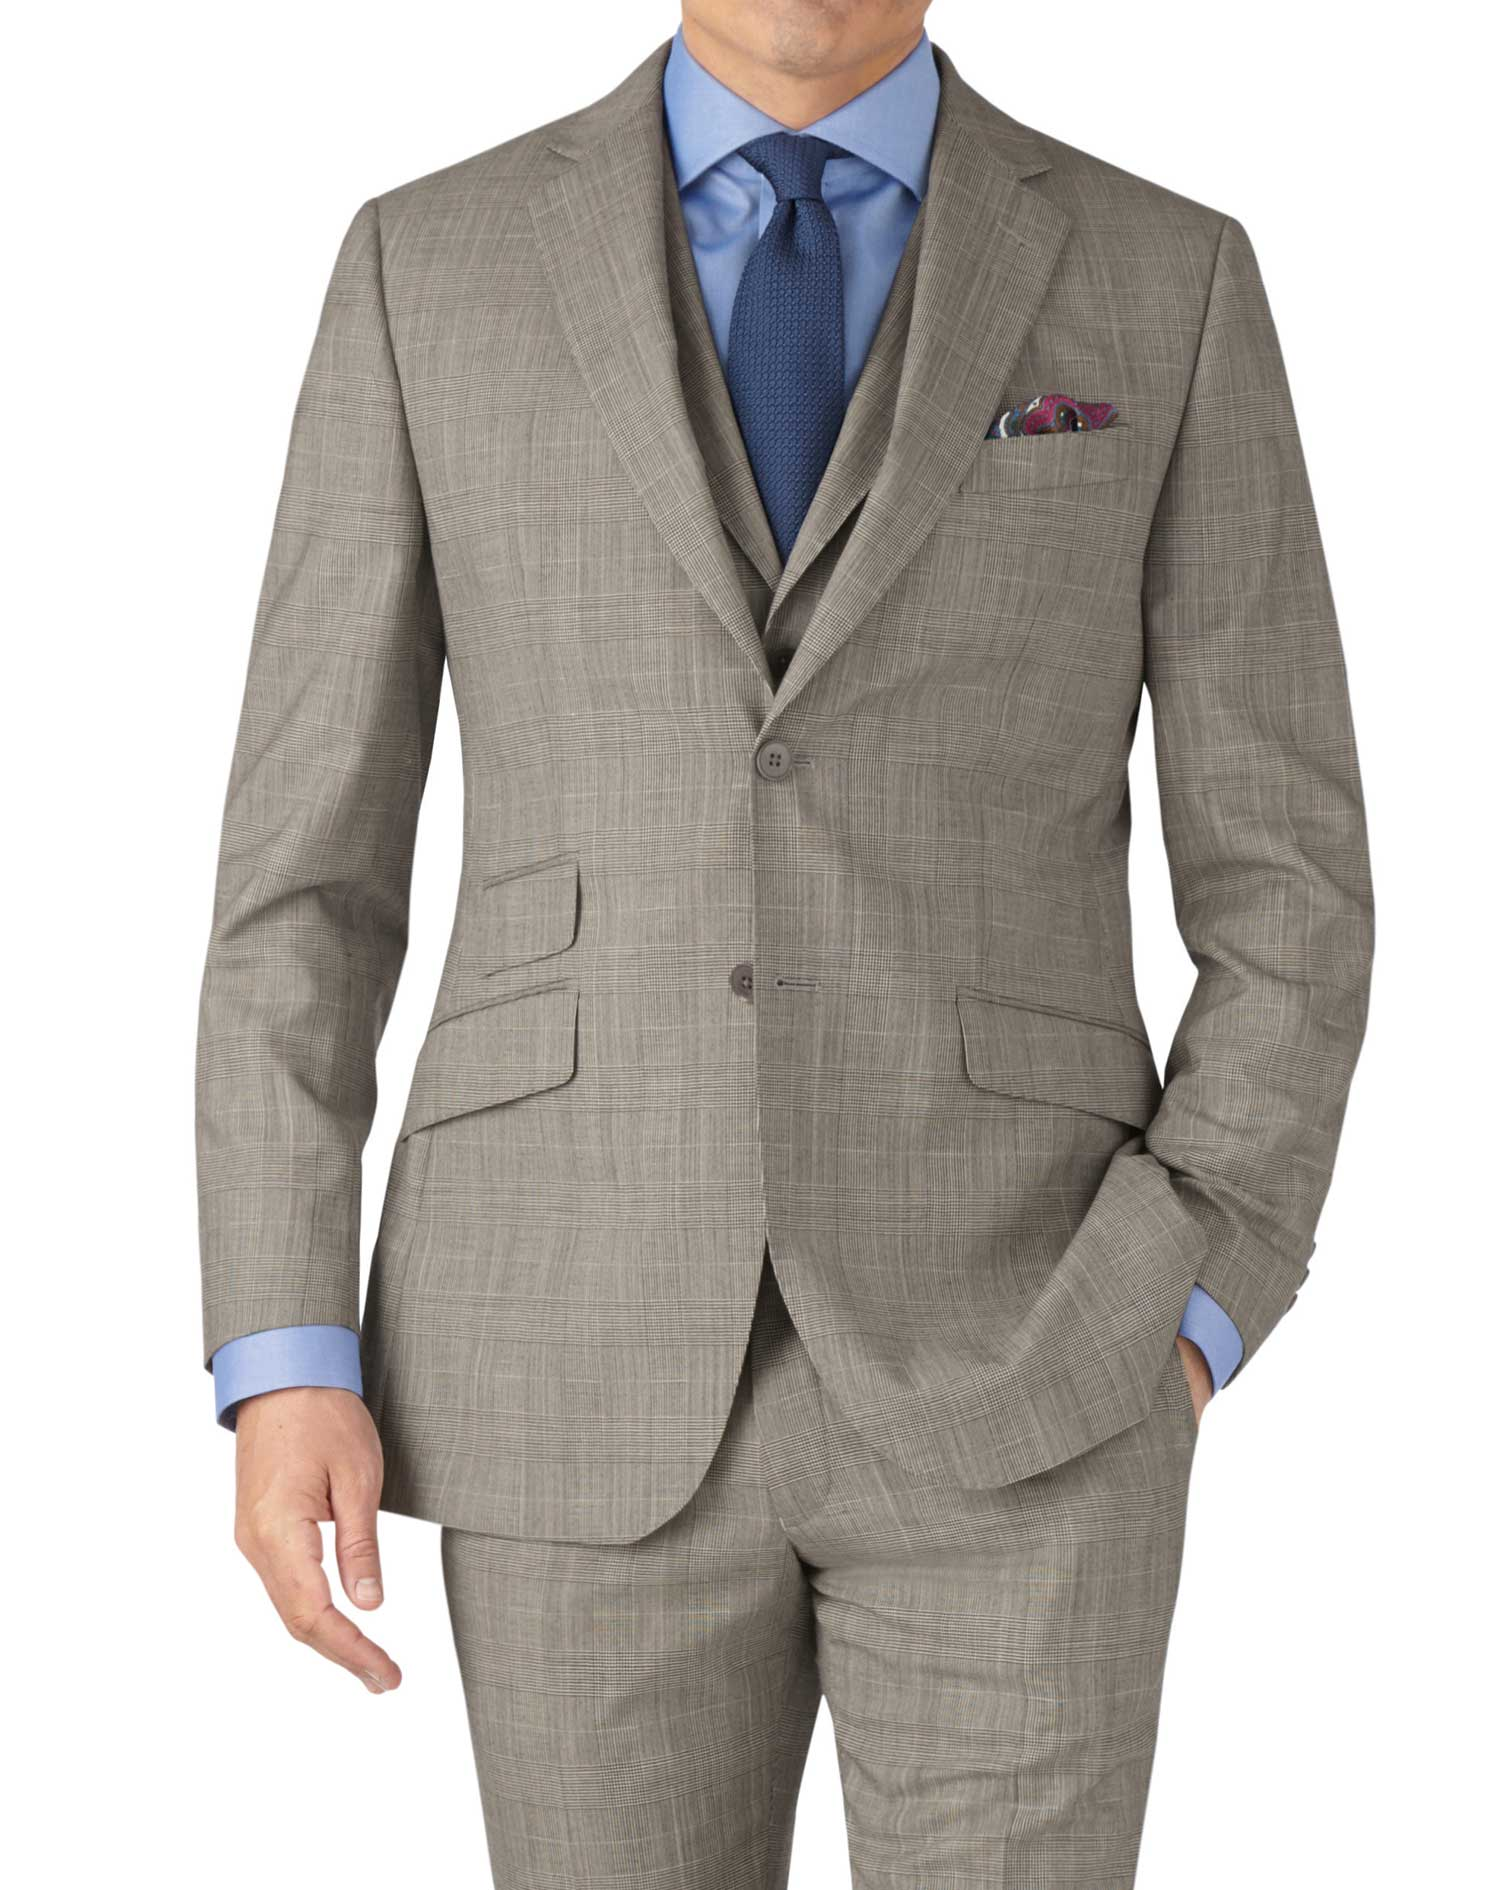 Grey Prince Of Wales Check Slim Fit Panama Business Suit Wool Jacket Size 38 Long by Charles Tyrwhit